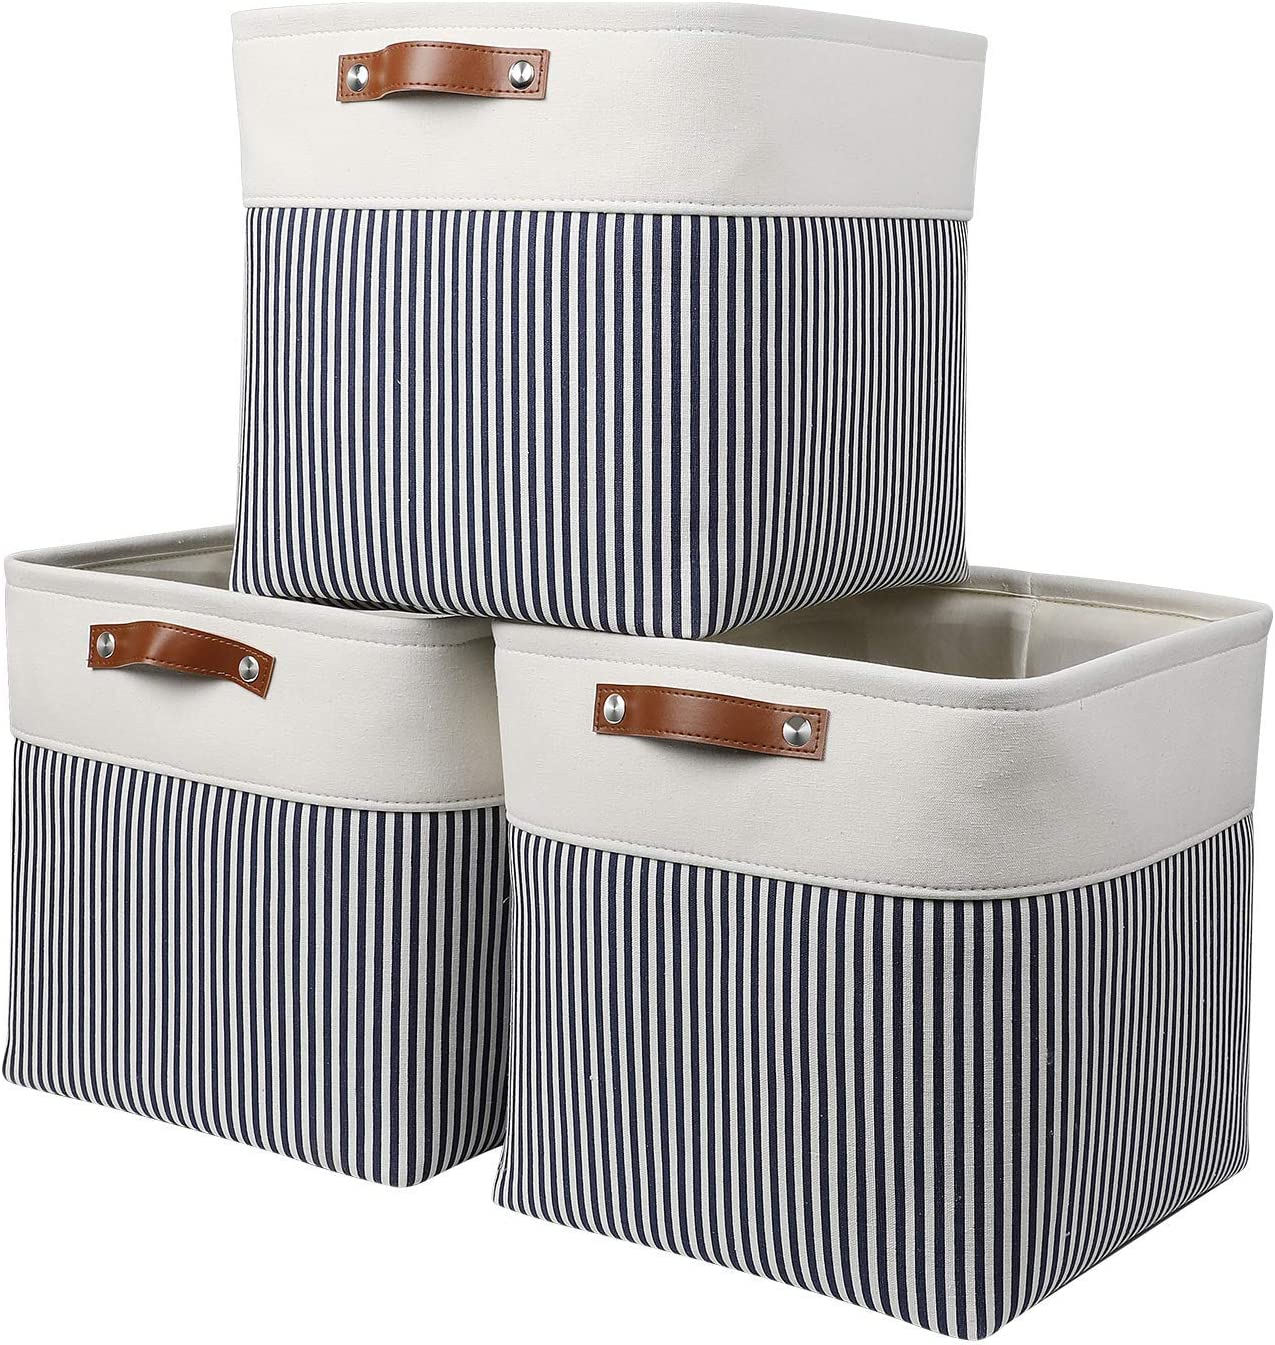 HEWEI Fabric Storage Boxes Cube Canvas Storage Basket for Shelves and cabinets Set of 3